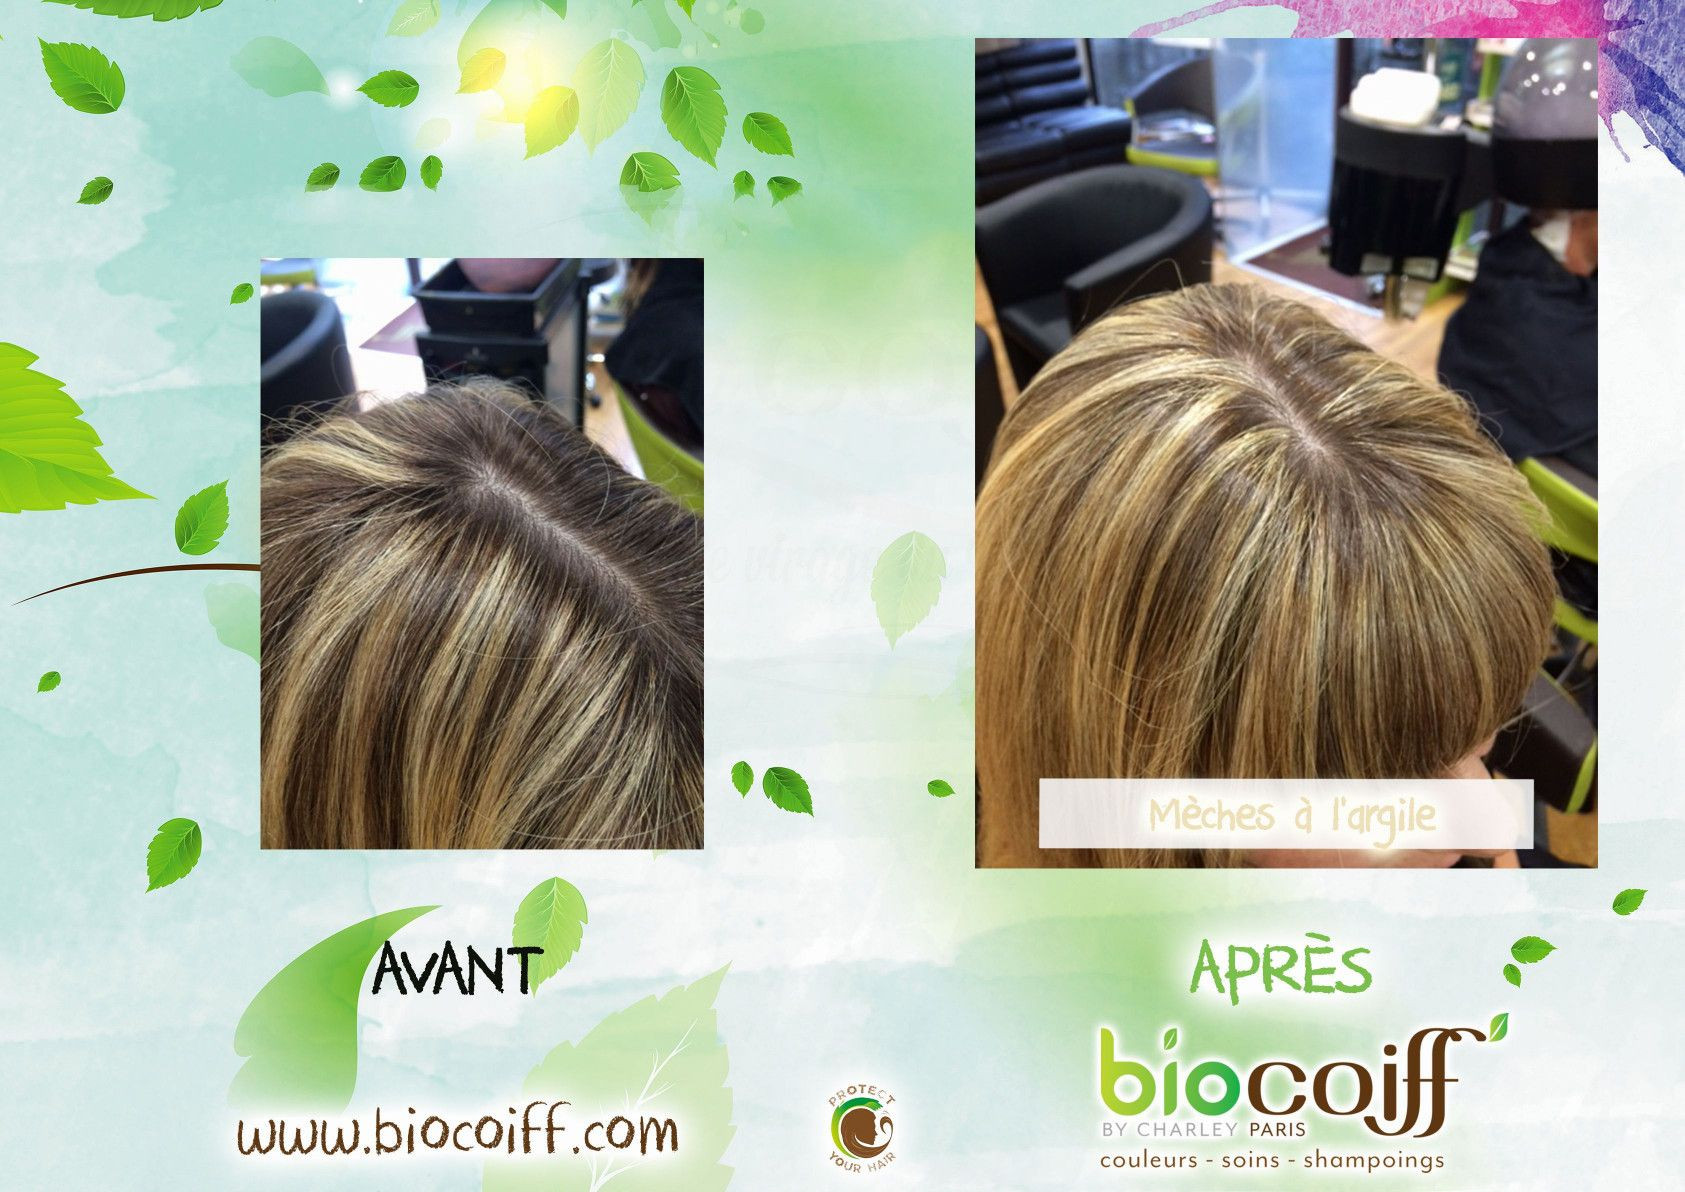 Table Roulante Jardin Beau 55 Image De Coiffure Of 32 Best Of Table Roulante Jardin